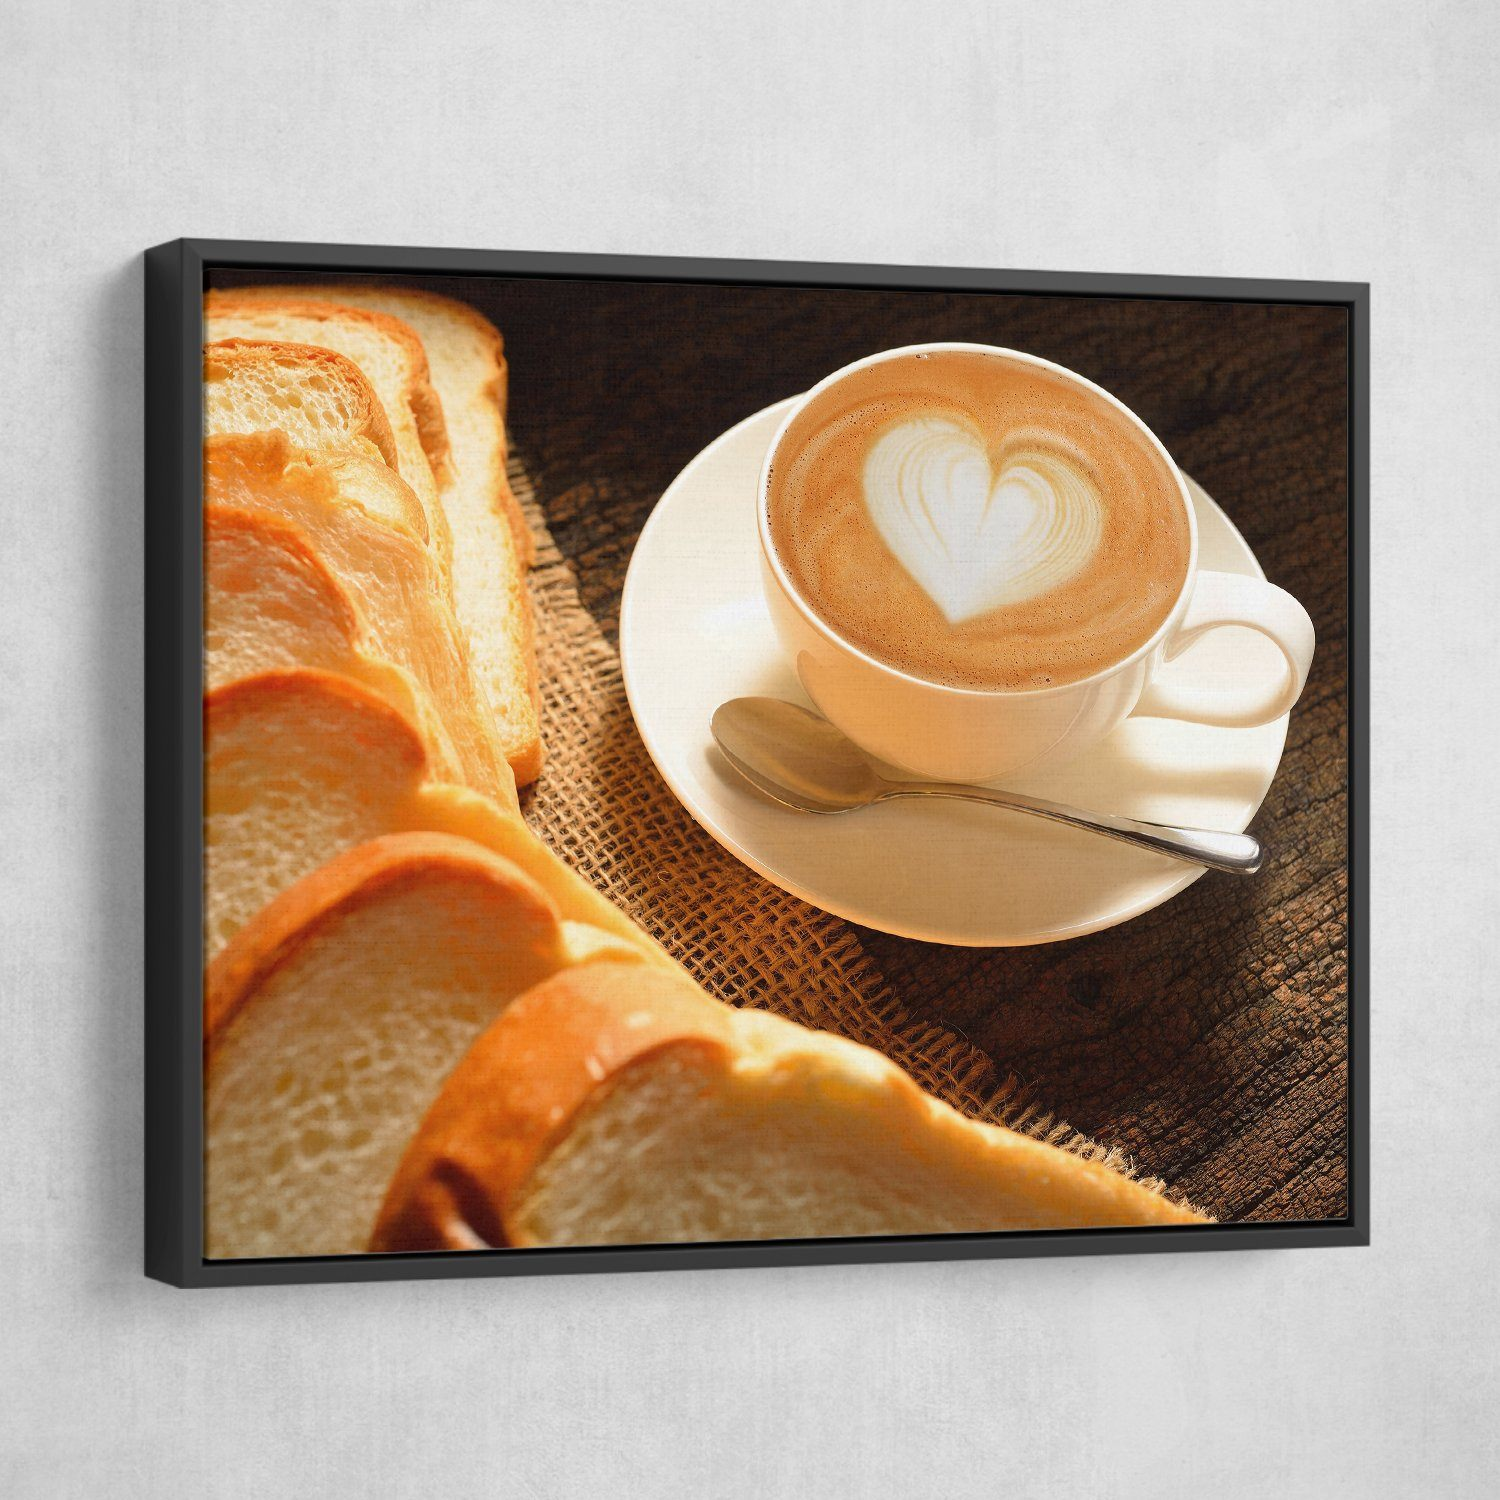 Some Bread and Latte wall art black floating frame